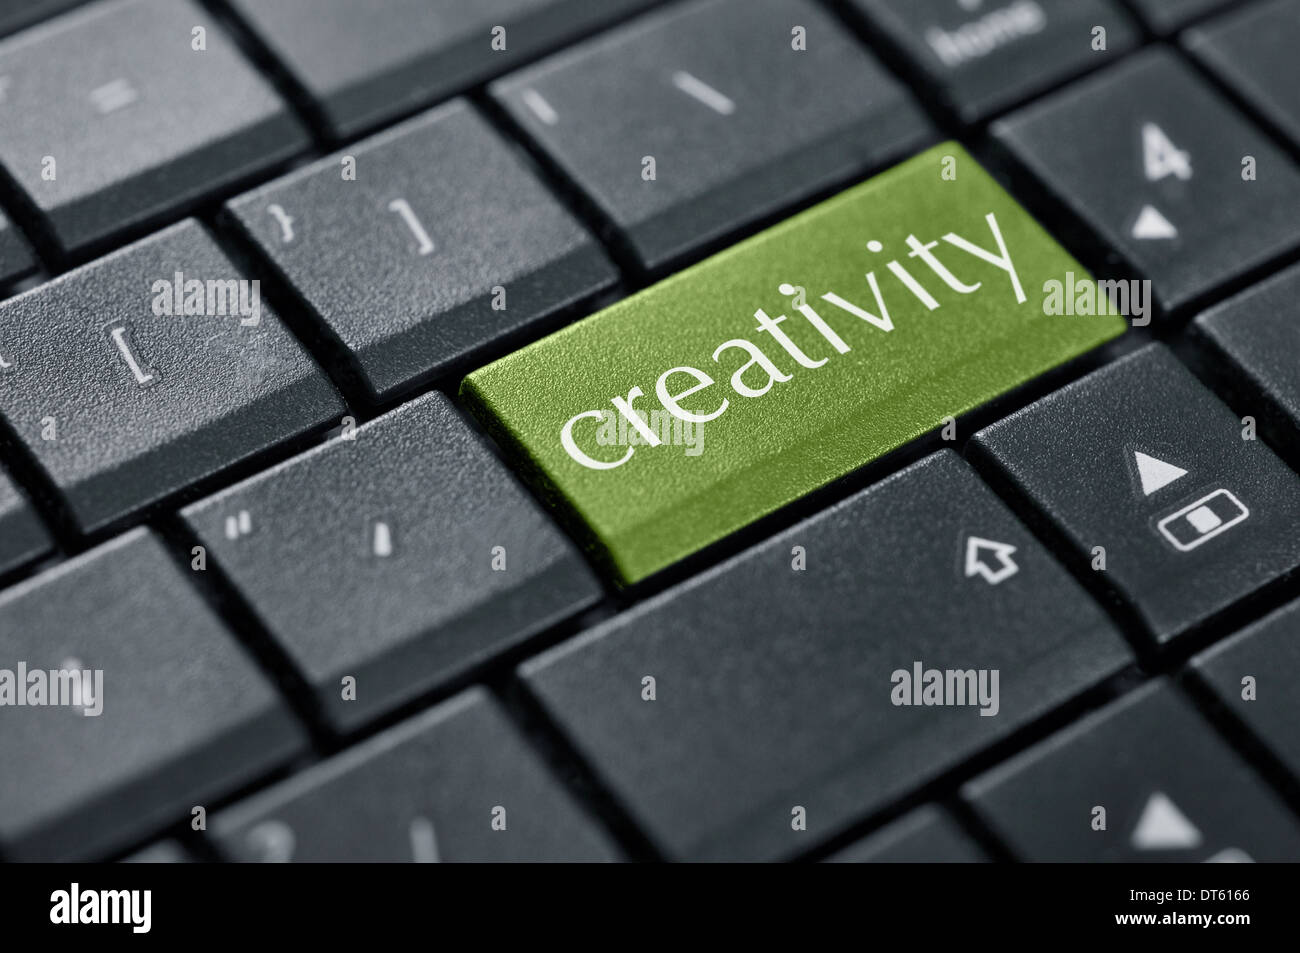 Word creativity on button of computer keyboard closeup. - Stock Image